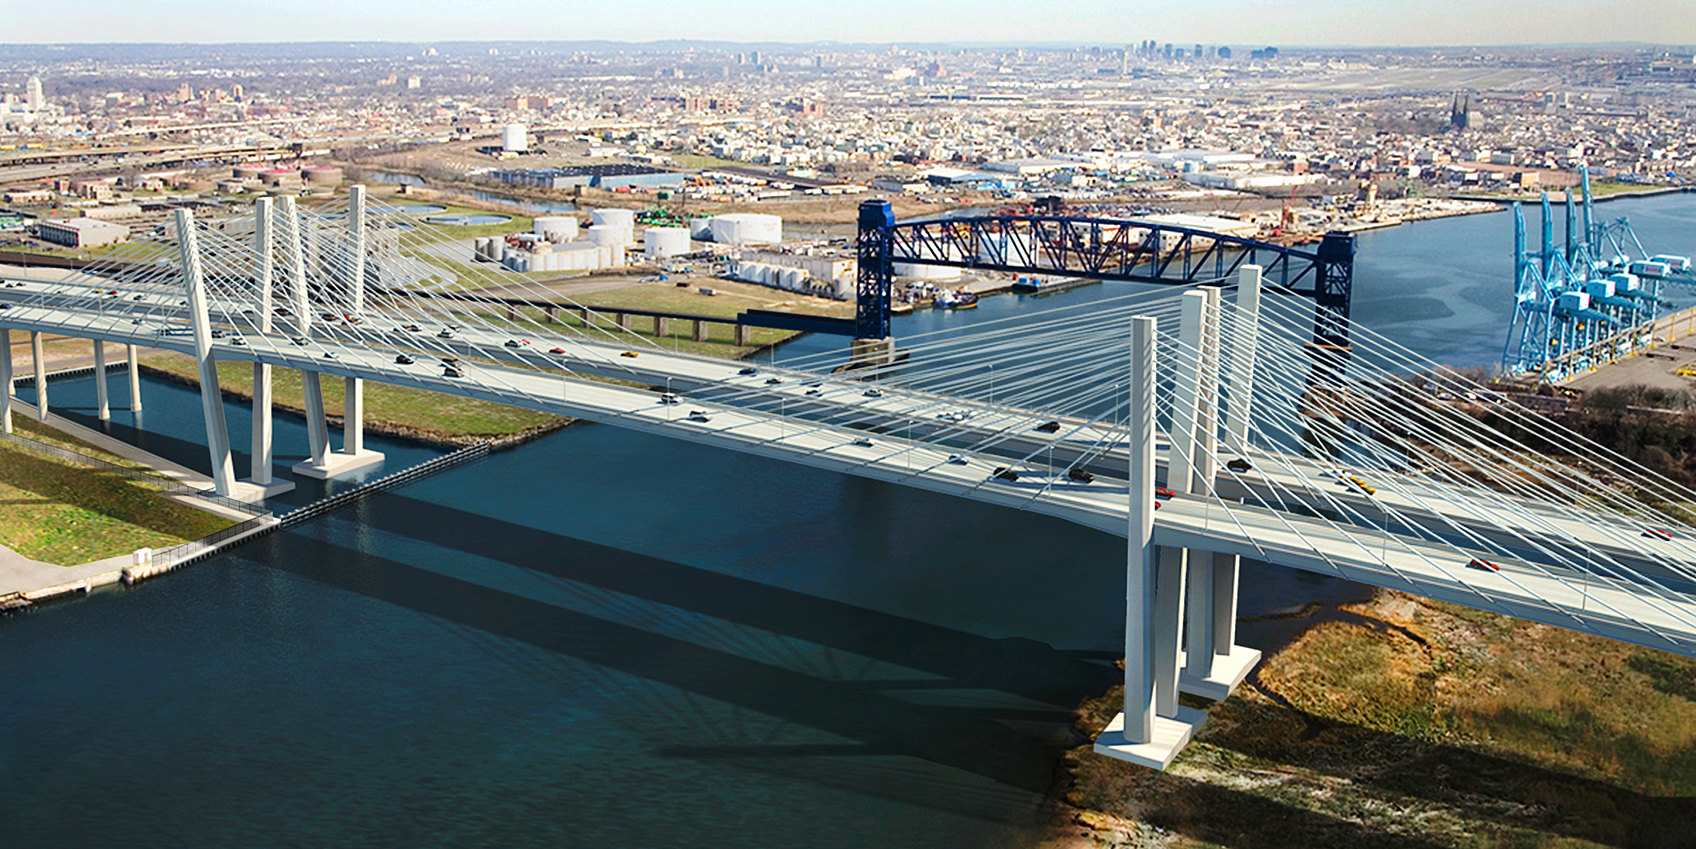 GOETHALS BRIDGE REPLACEMENT